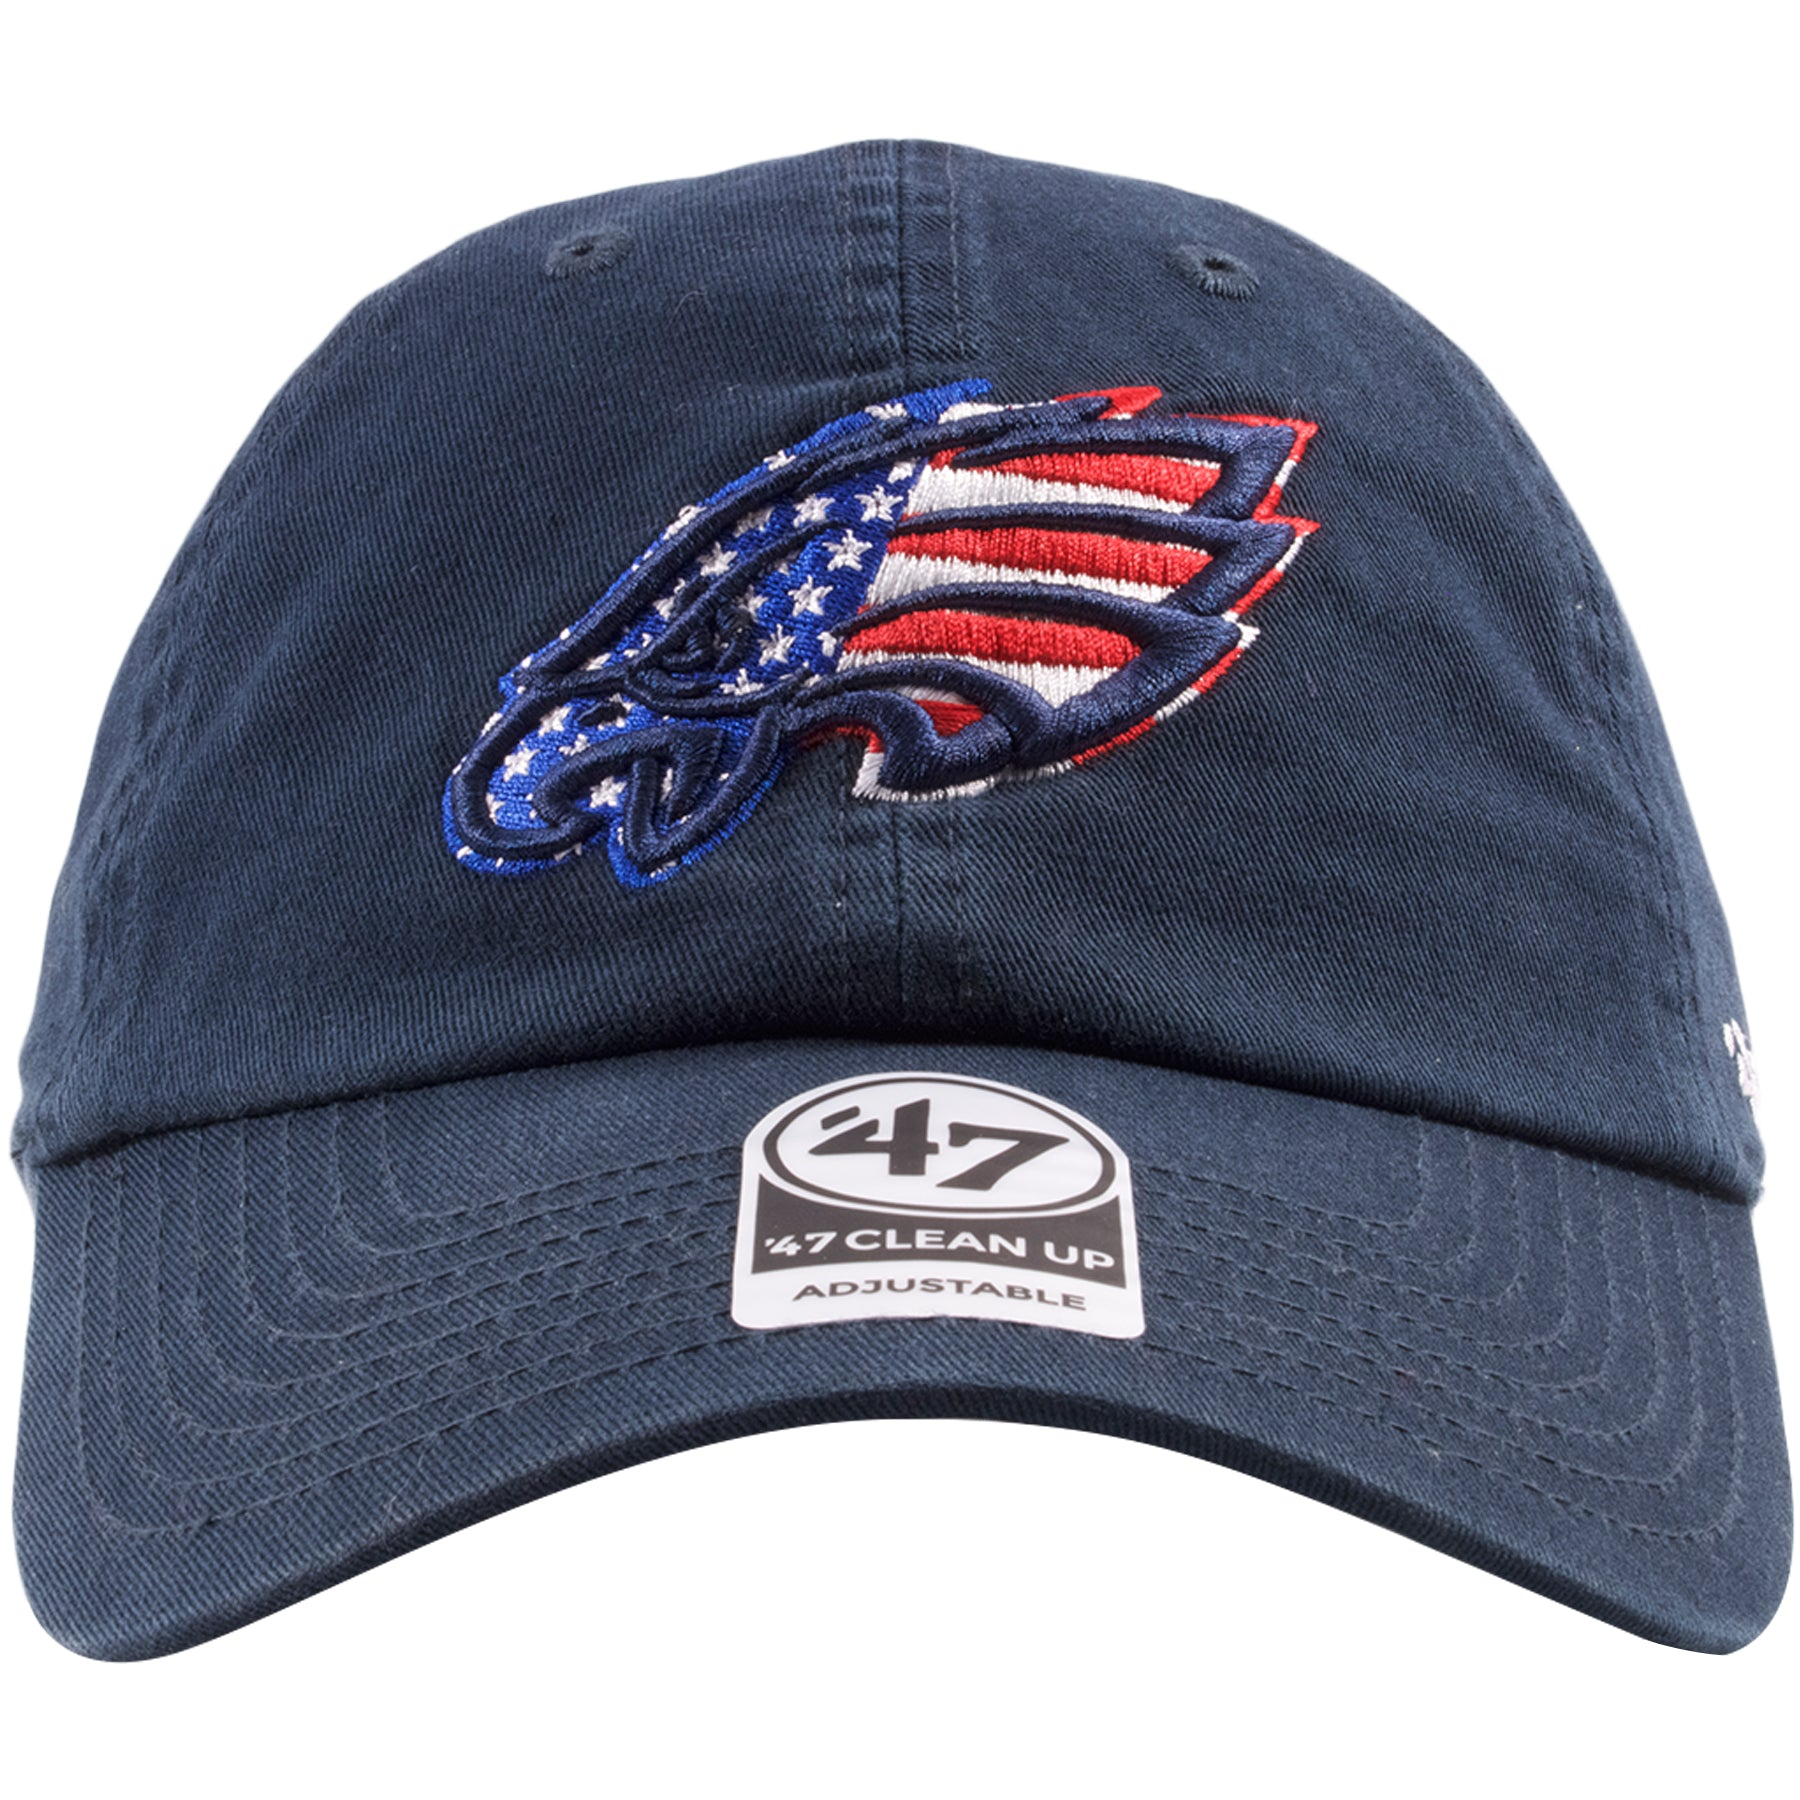 605a700835d85 Embroidered on the front of the Philadelphia Eagles navy blue stars and  stripes dad hat is